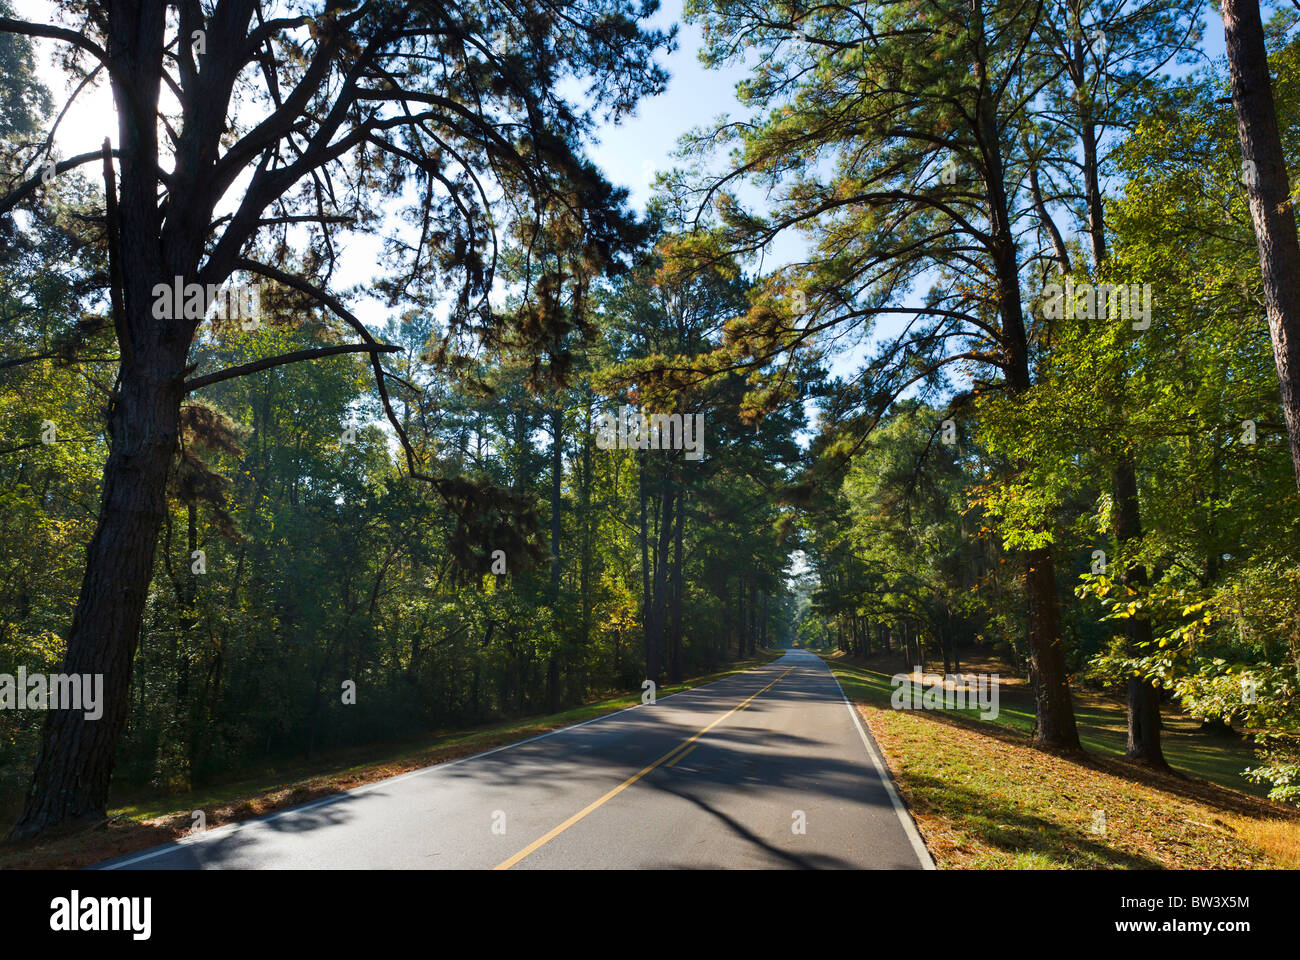 The Natchez Trace Parkway between Lorman and Natchez, Mississippi, USA - Stock Image